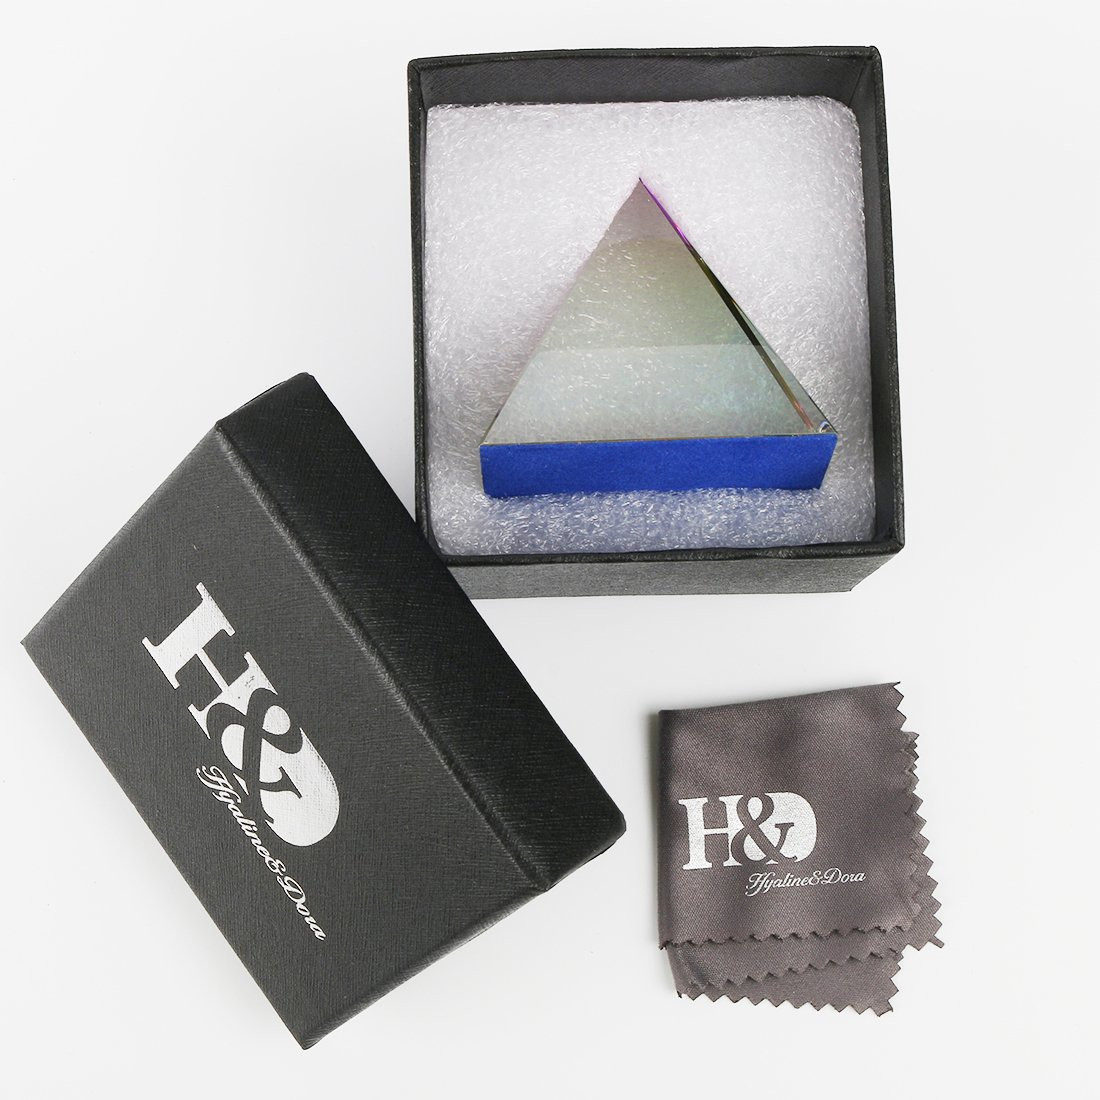 H/&D Crystal Iridescent Pyramid Rainbow Colors with Gift Box 2.4-Inch